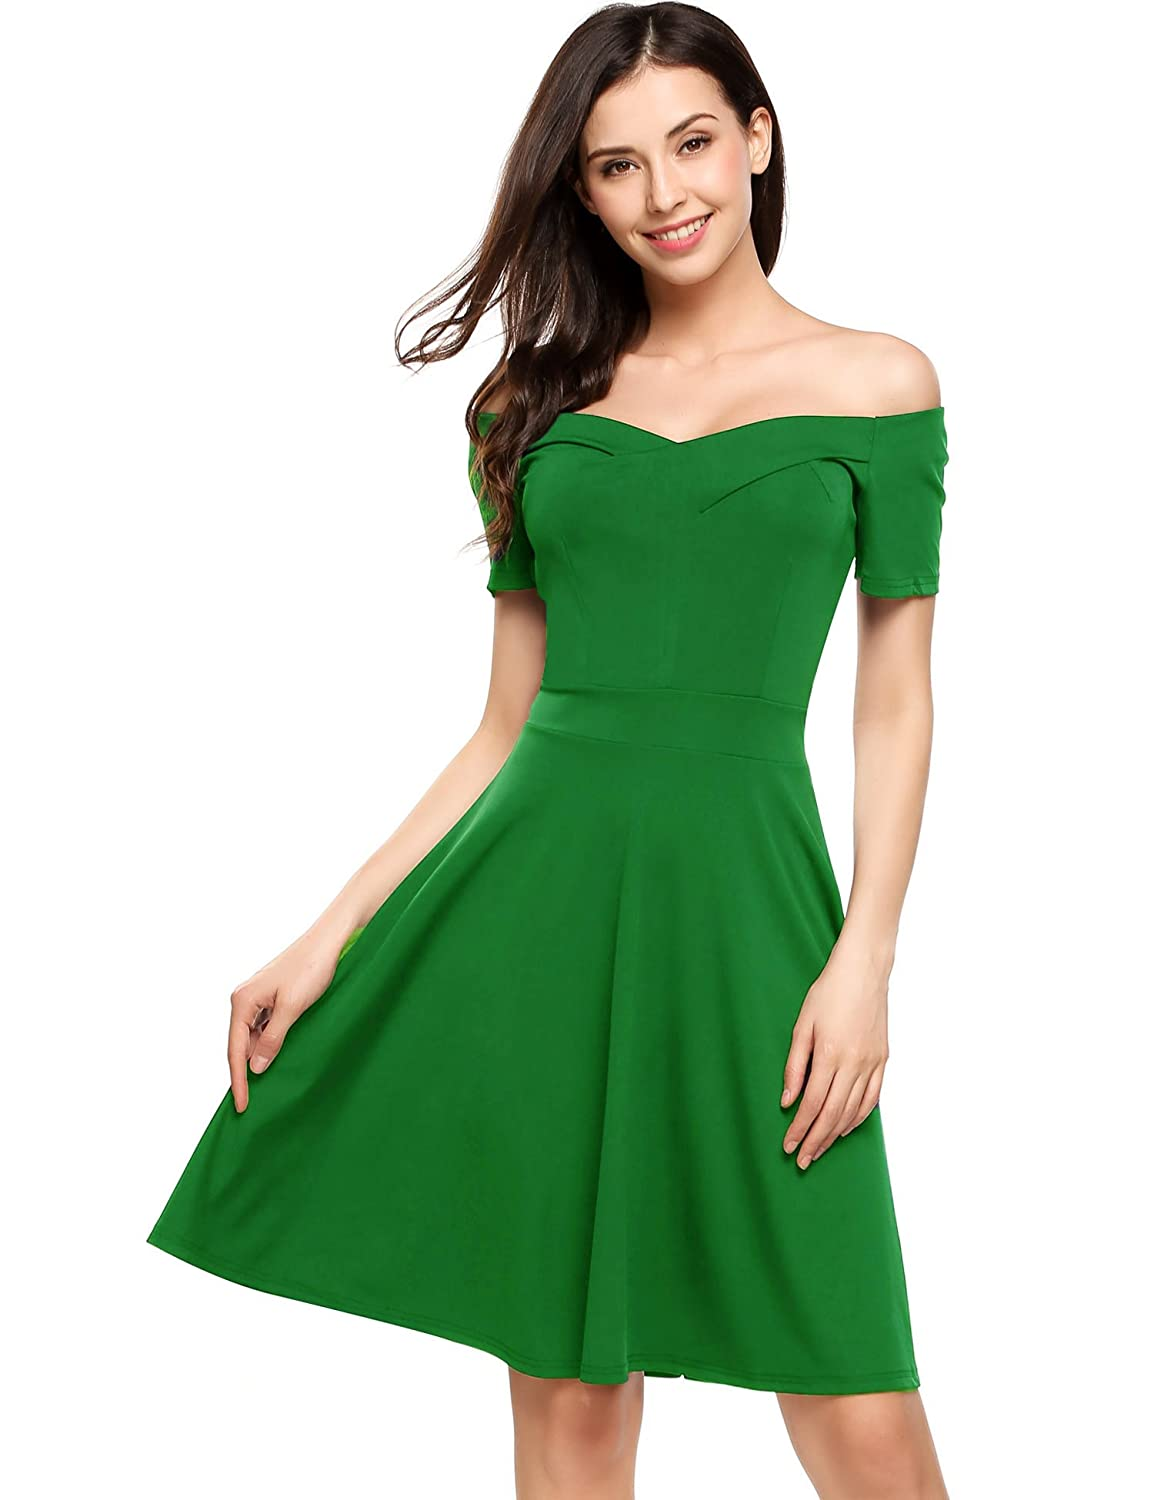 Meaneor Womens Summer Dress Off Shoulder Ruffle A line Swing Party Dress #MWH014056